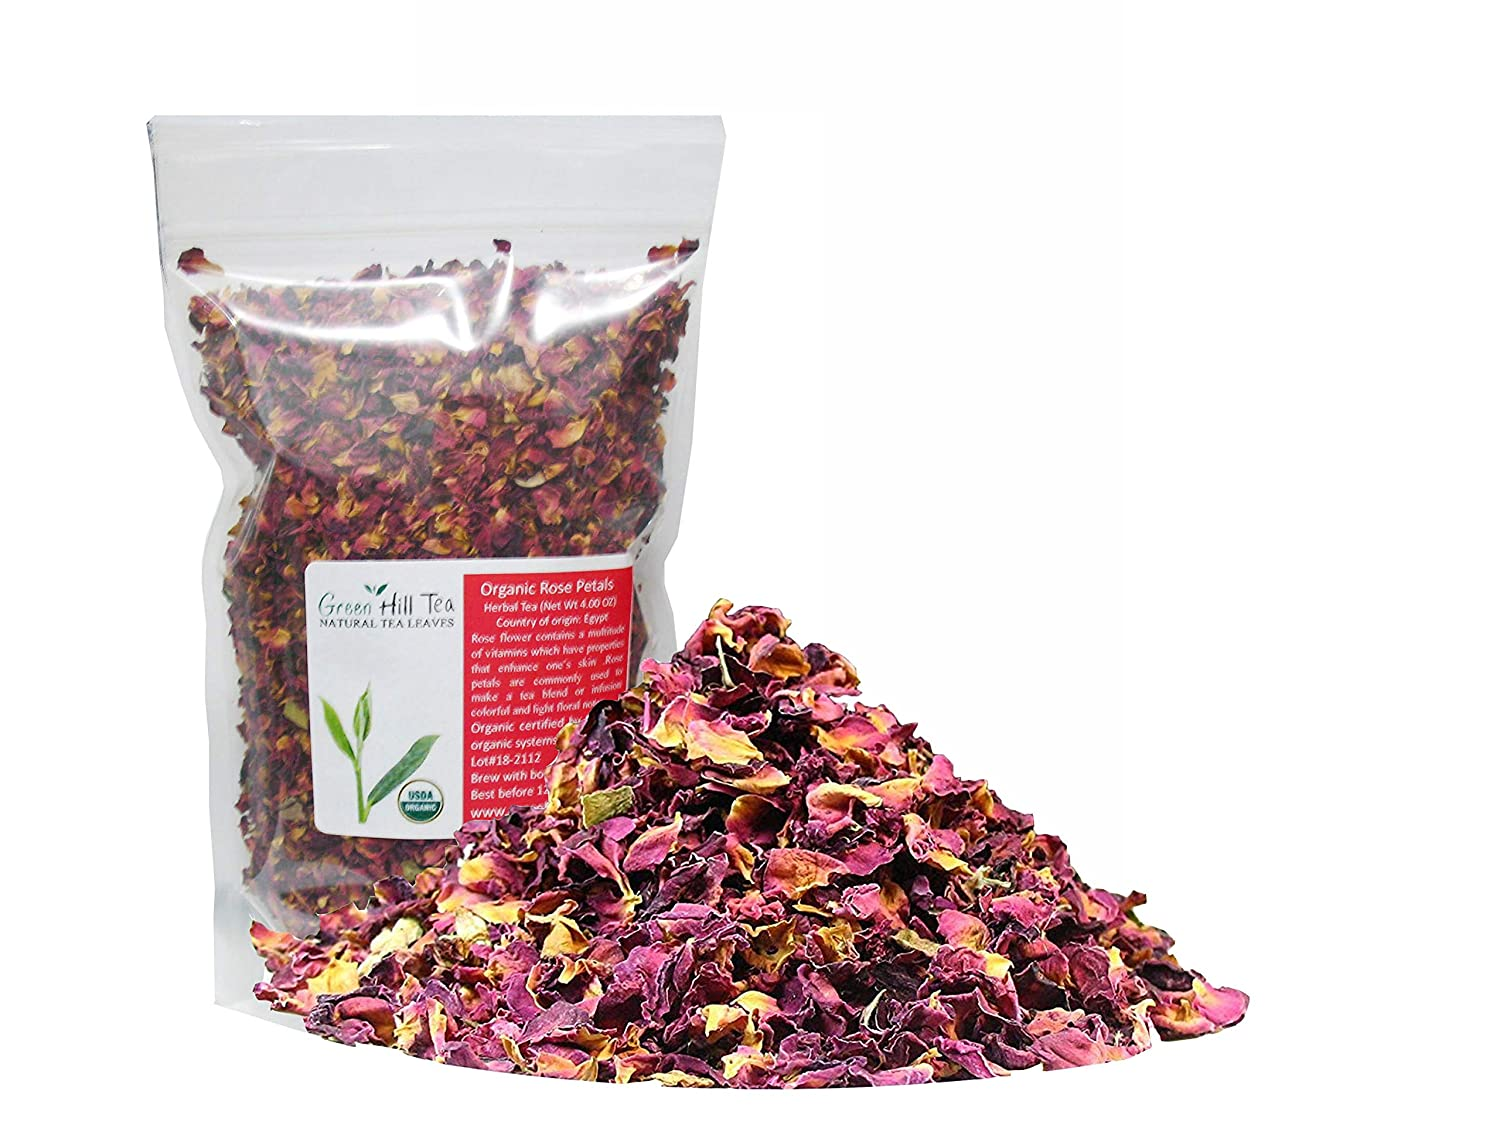 Organic Rose Flower Rose Petals Tea caffeine free herbal tea (Organic Rose Flower 4 OZ)